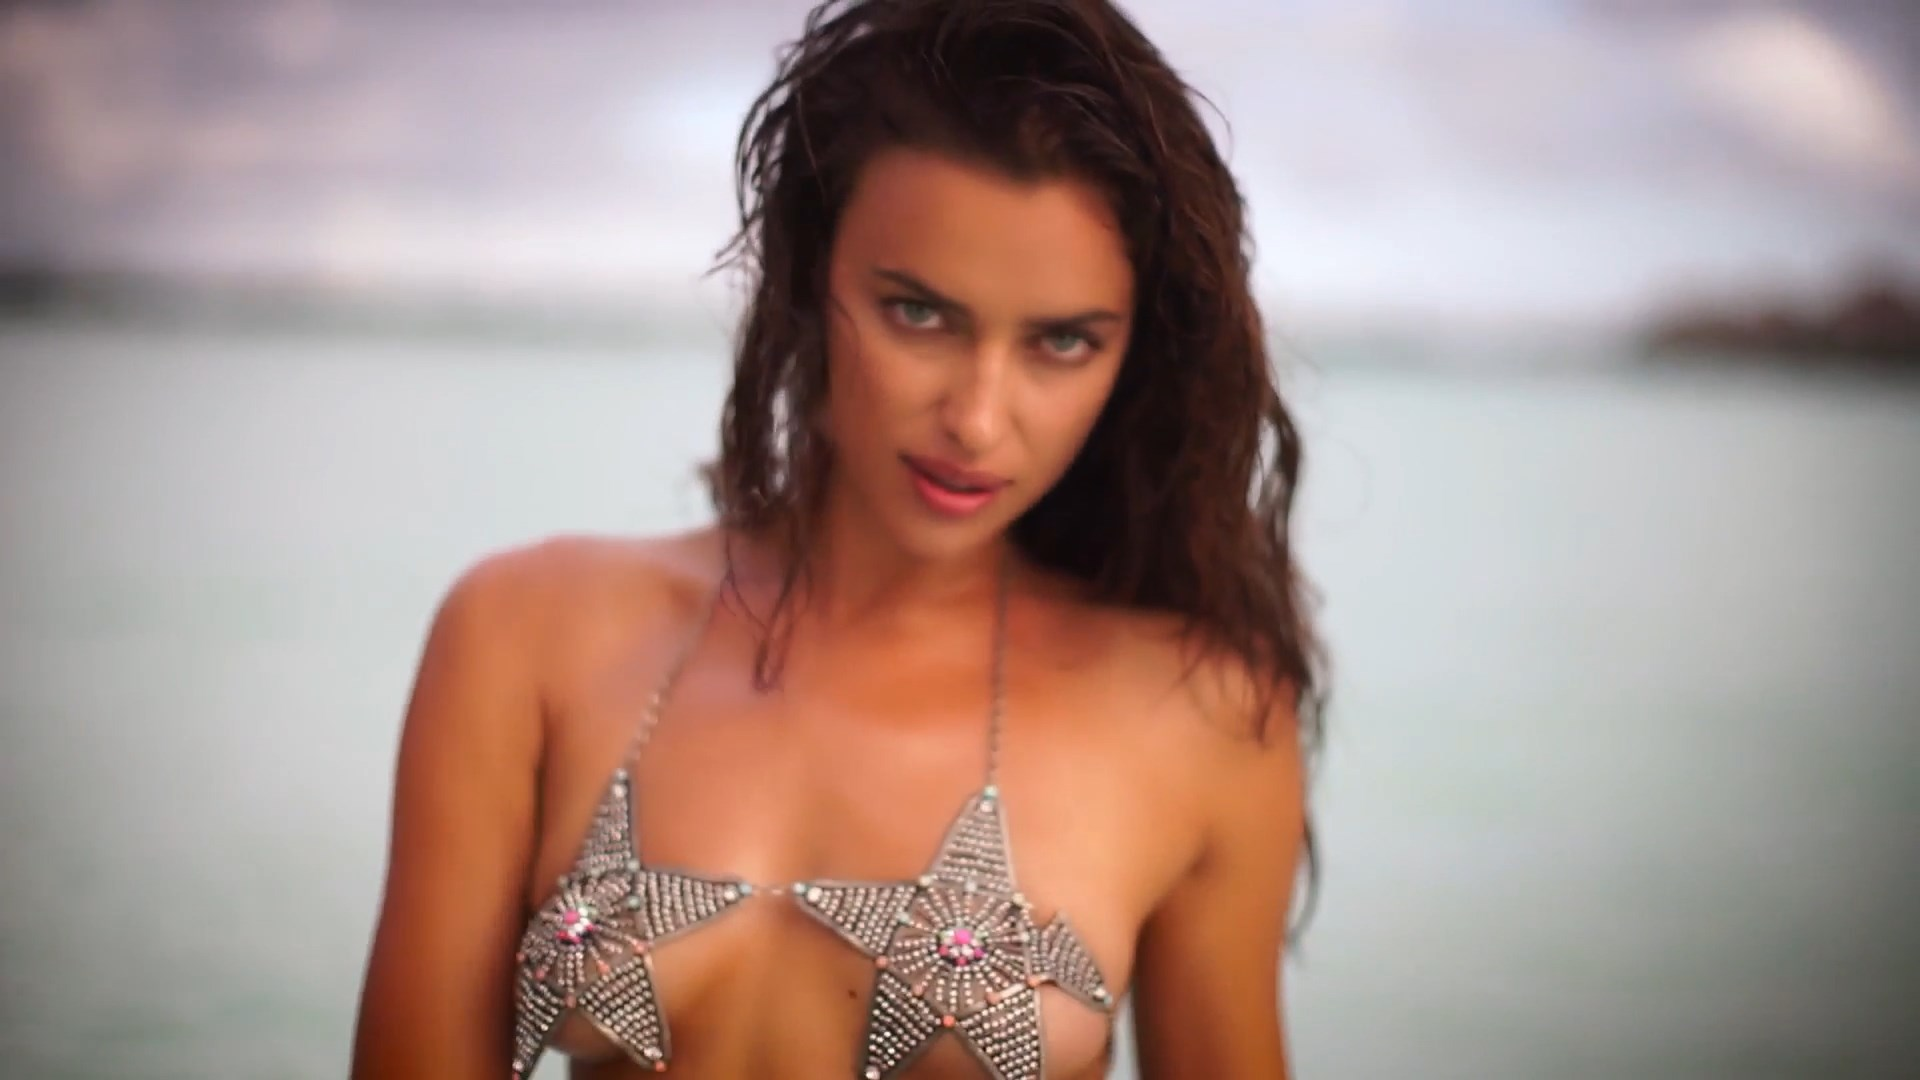 Irina Shayk riding big cock